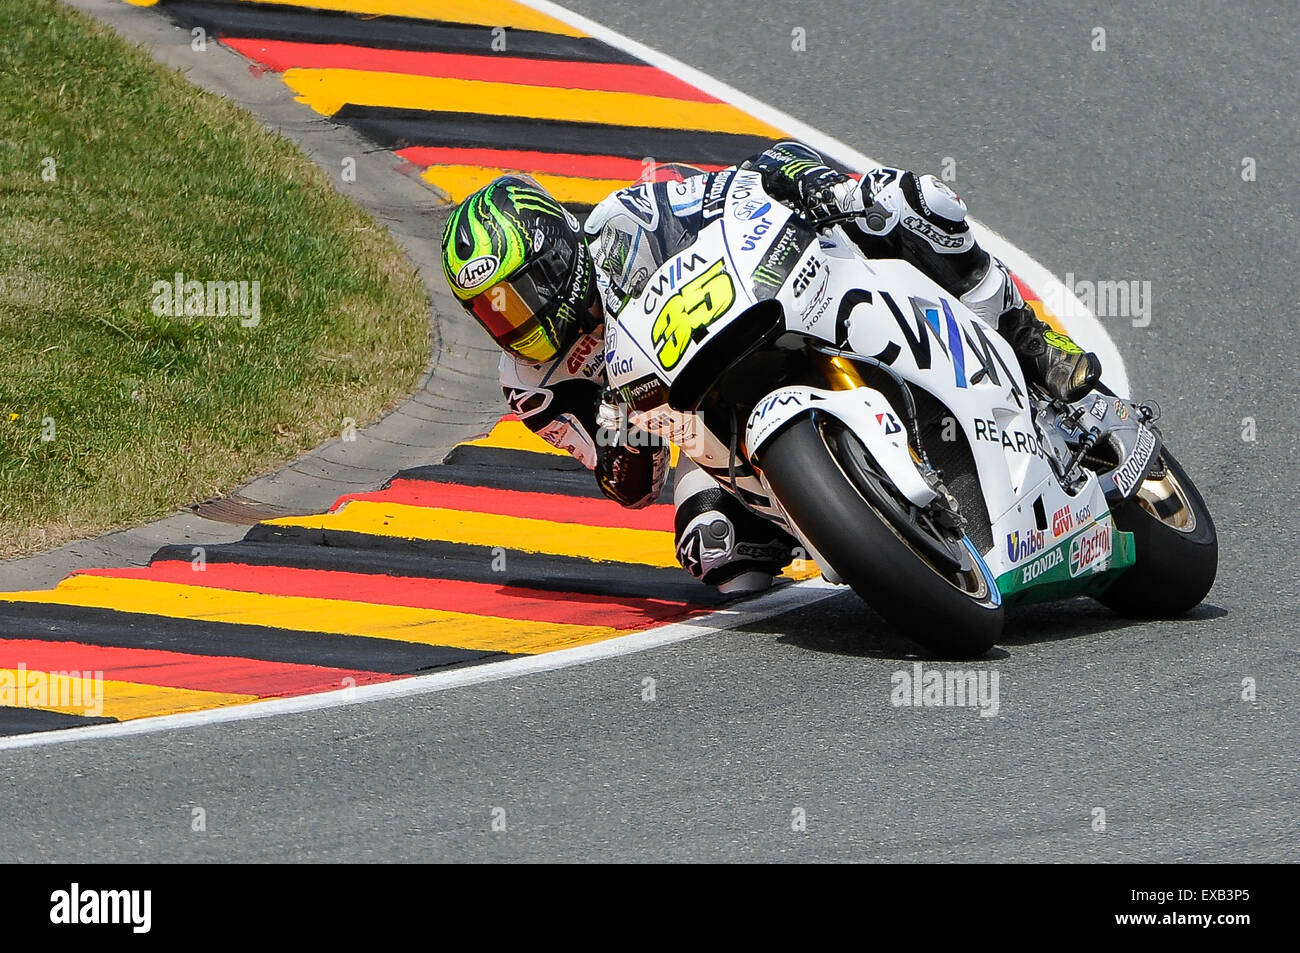 sachsenring germany 10 gopro motorrad grand prix deutschland moto stock photo royalty free. Black Bedroom Furniture Sets. Home Design Ideas